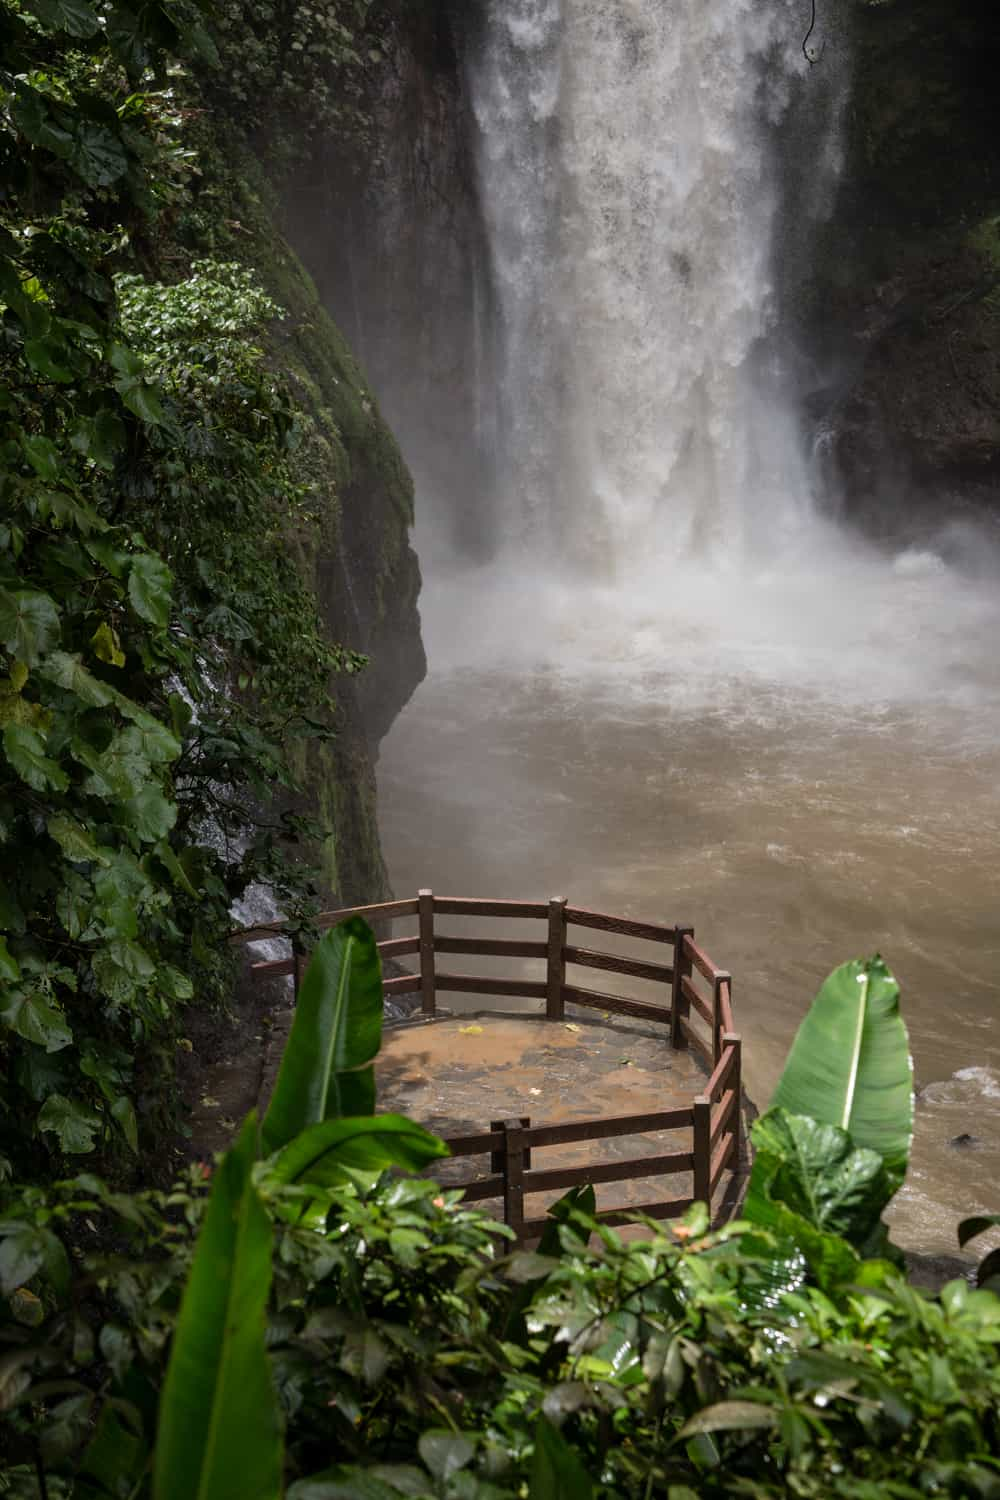 Close-up of Magia Blanca platform from gazebo for waterfall wedding in Costa Rica.